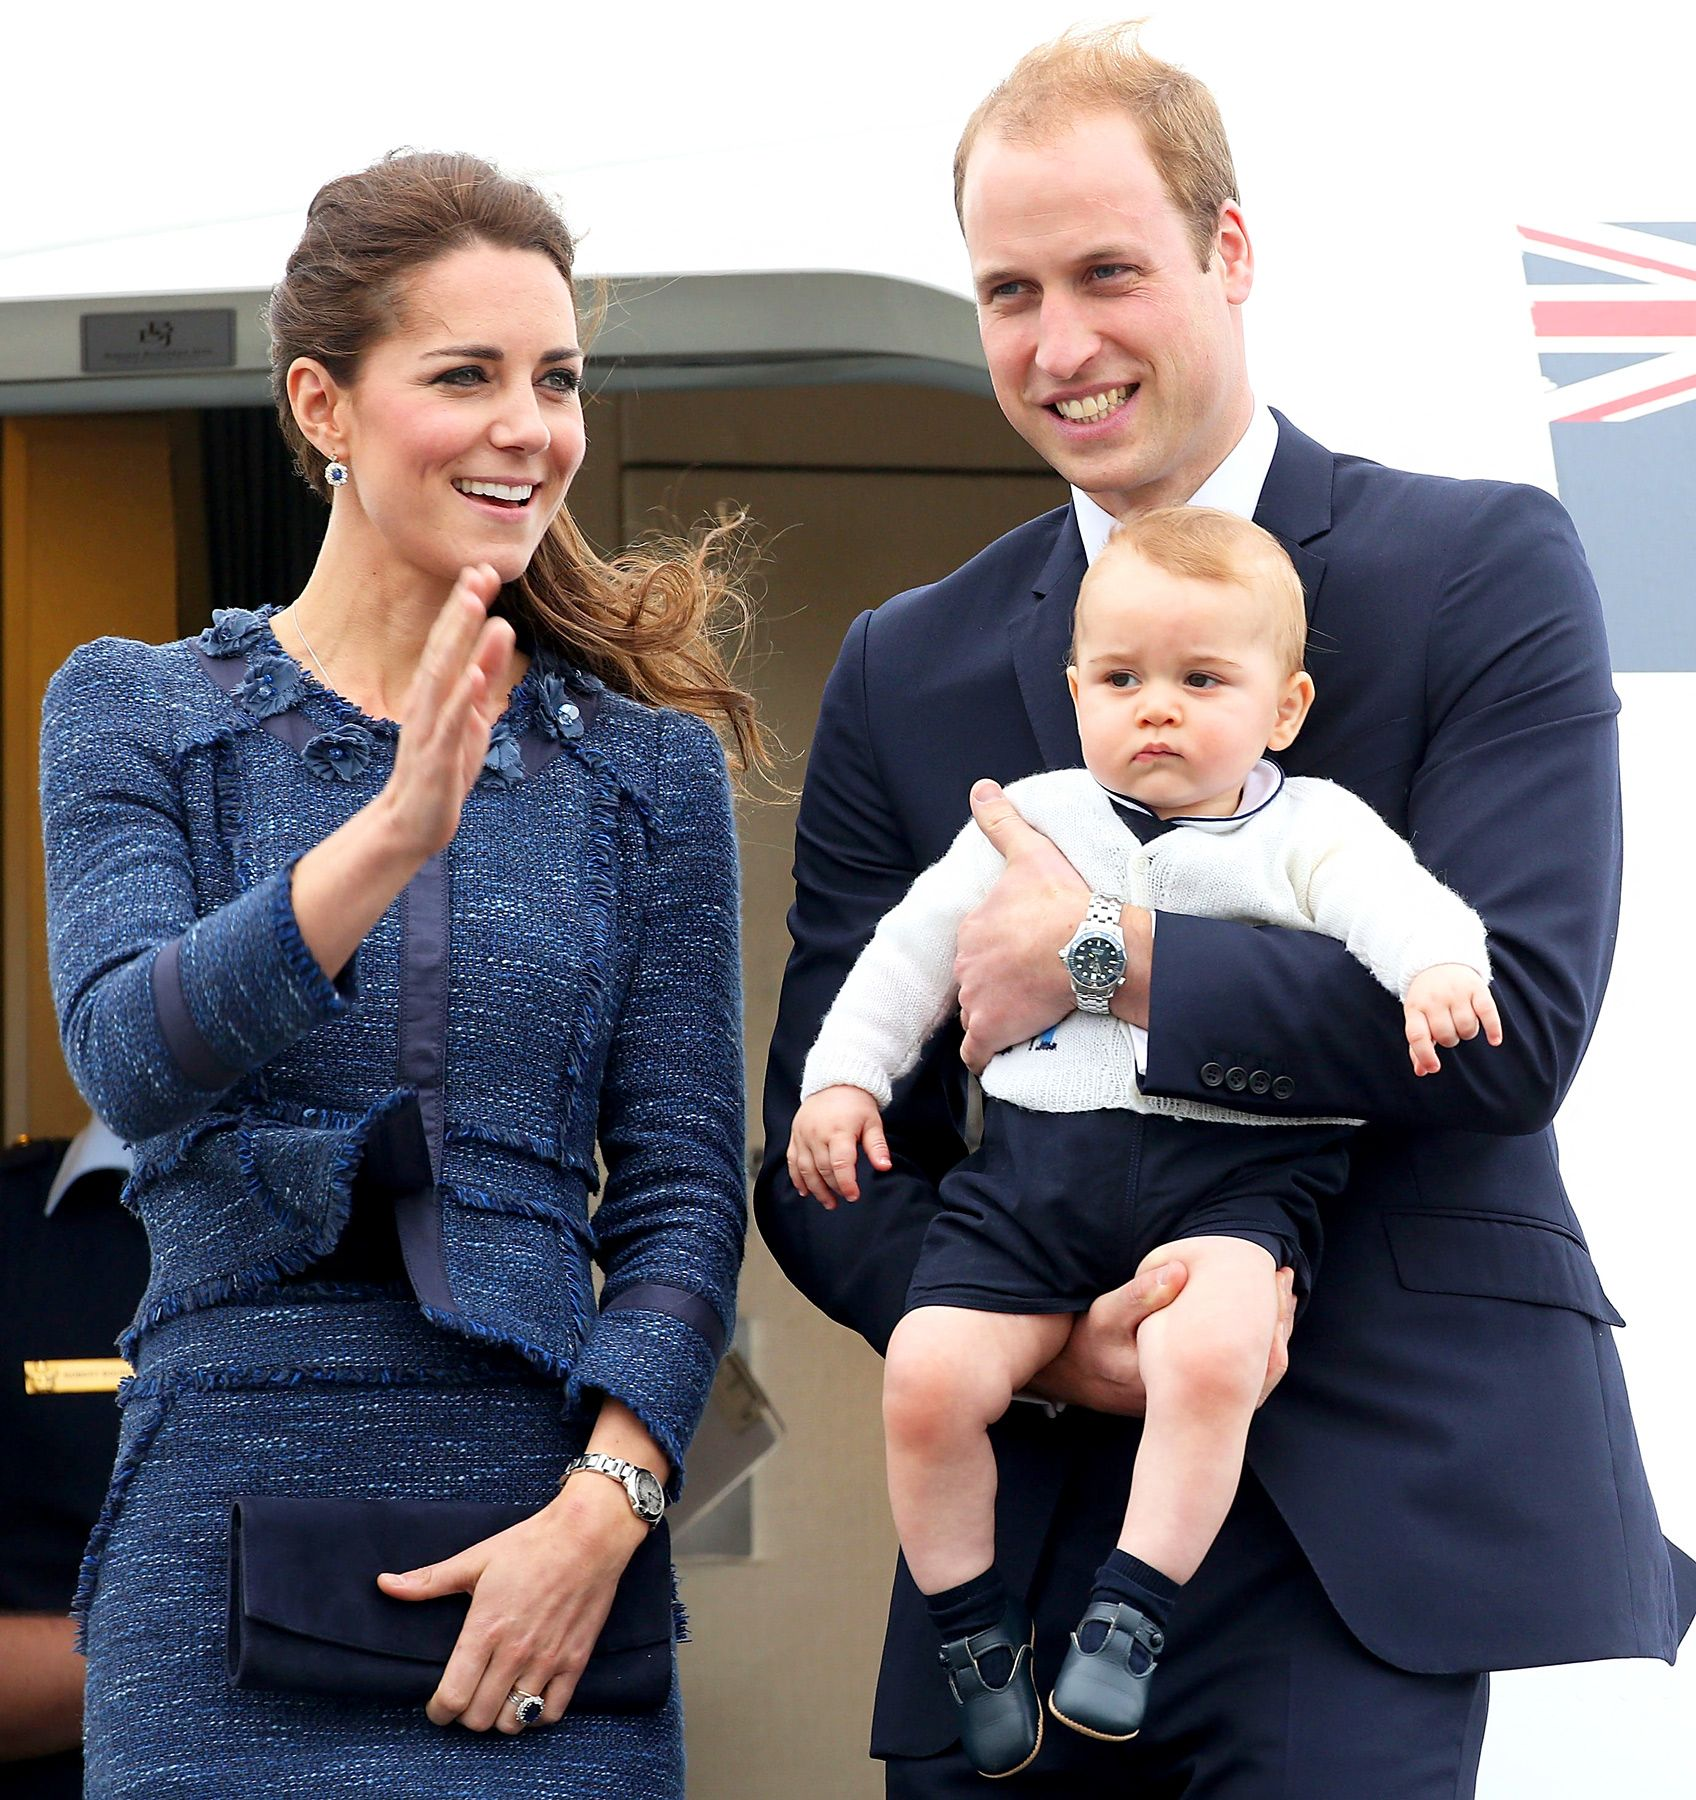 Swinging couples + prince george